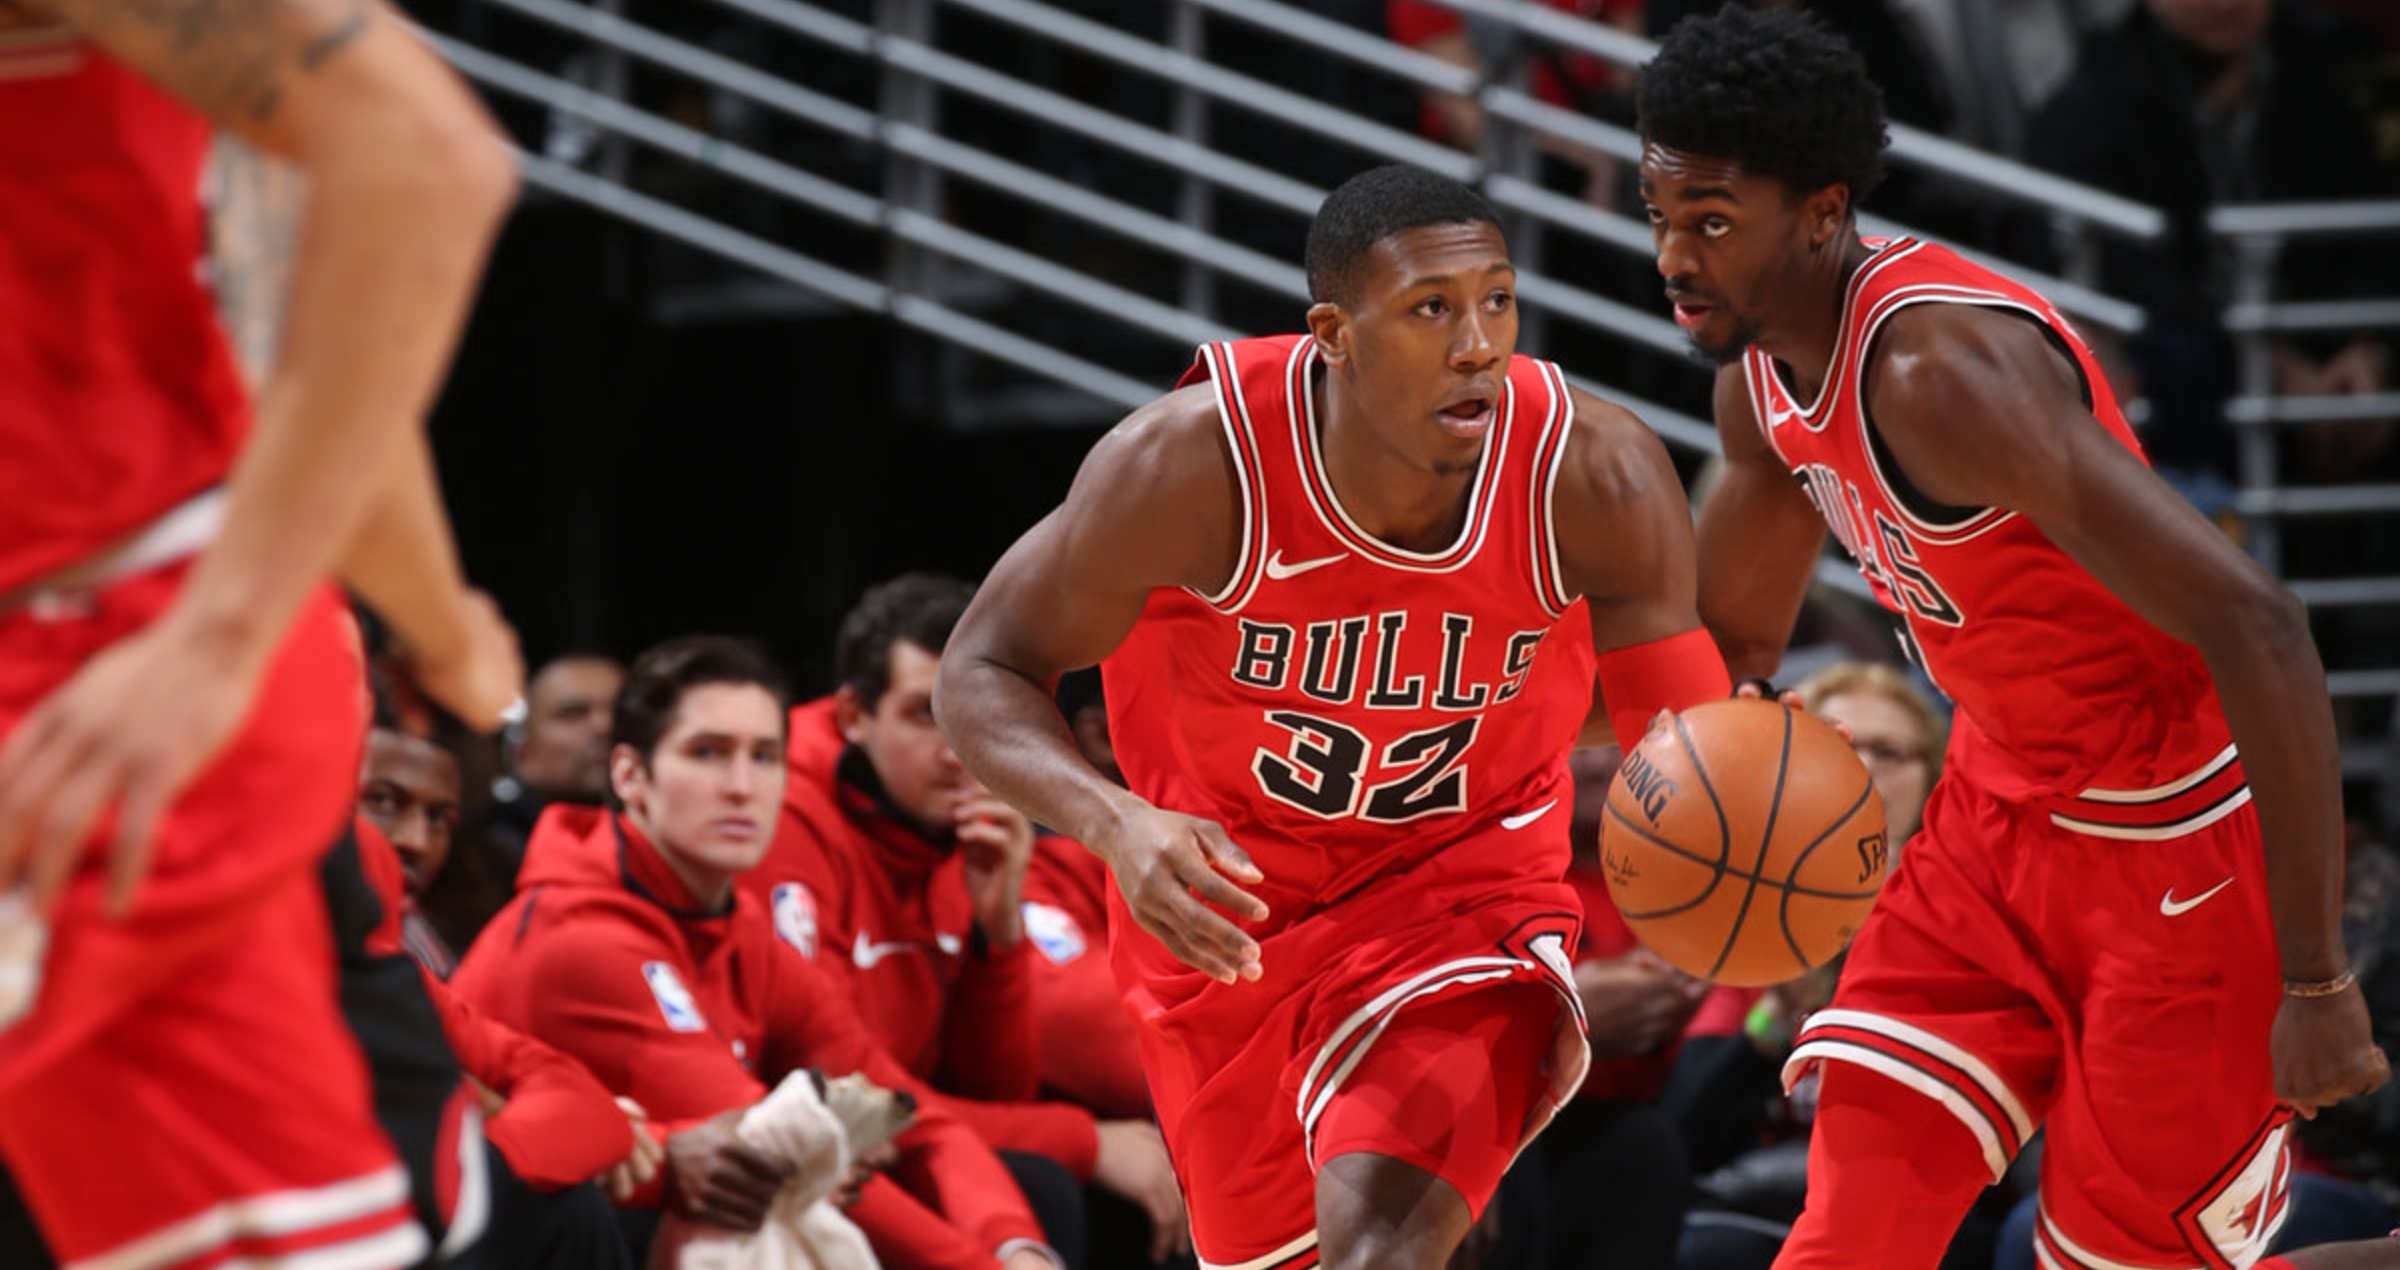 Kris Dunn bringing up the ball.